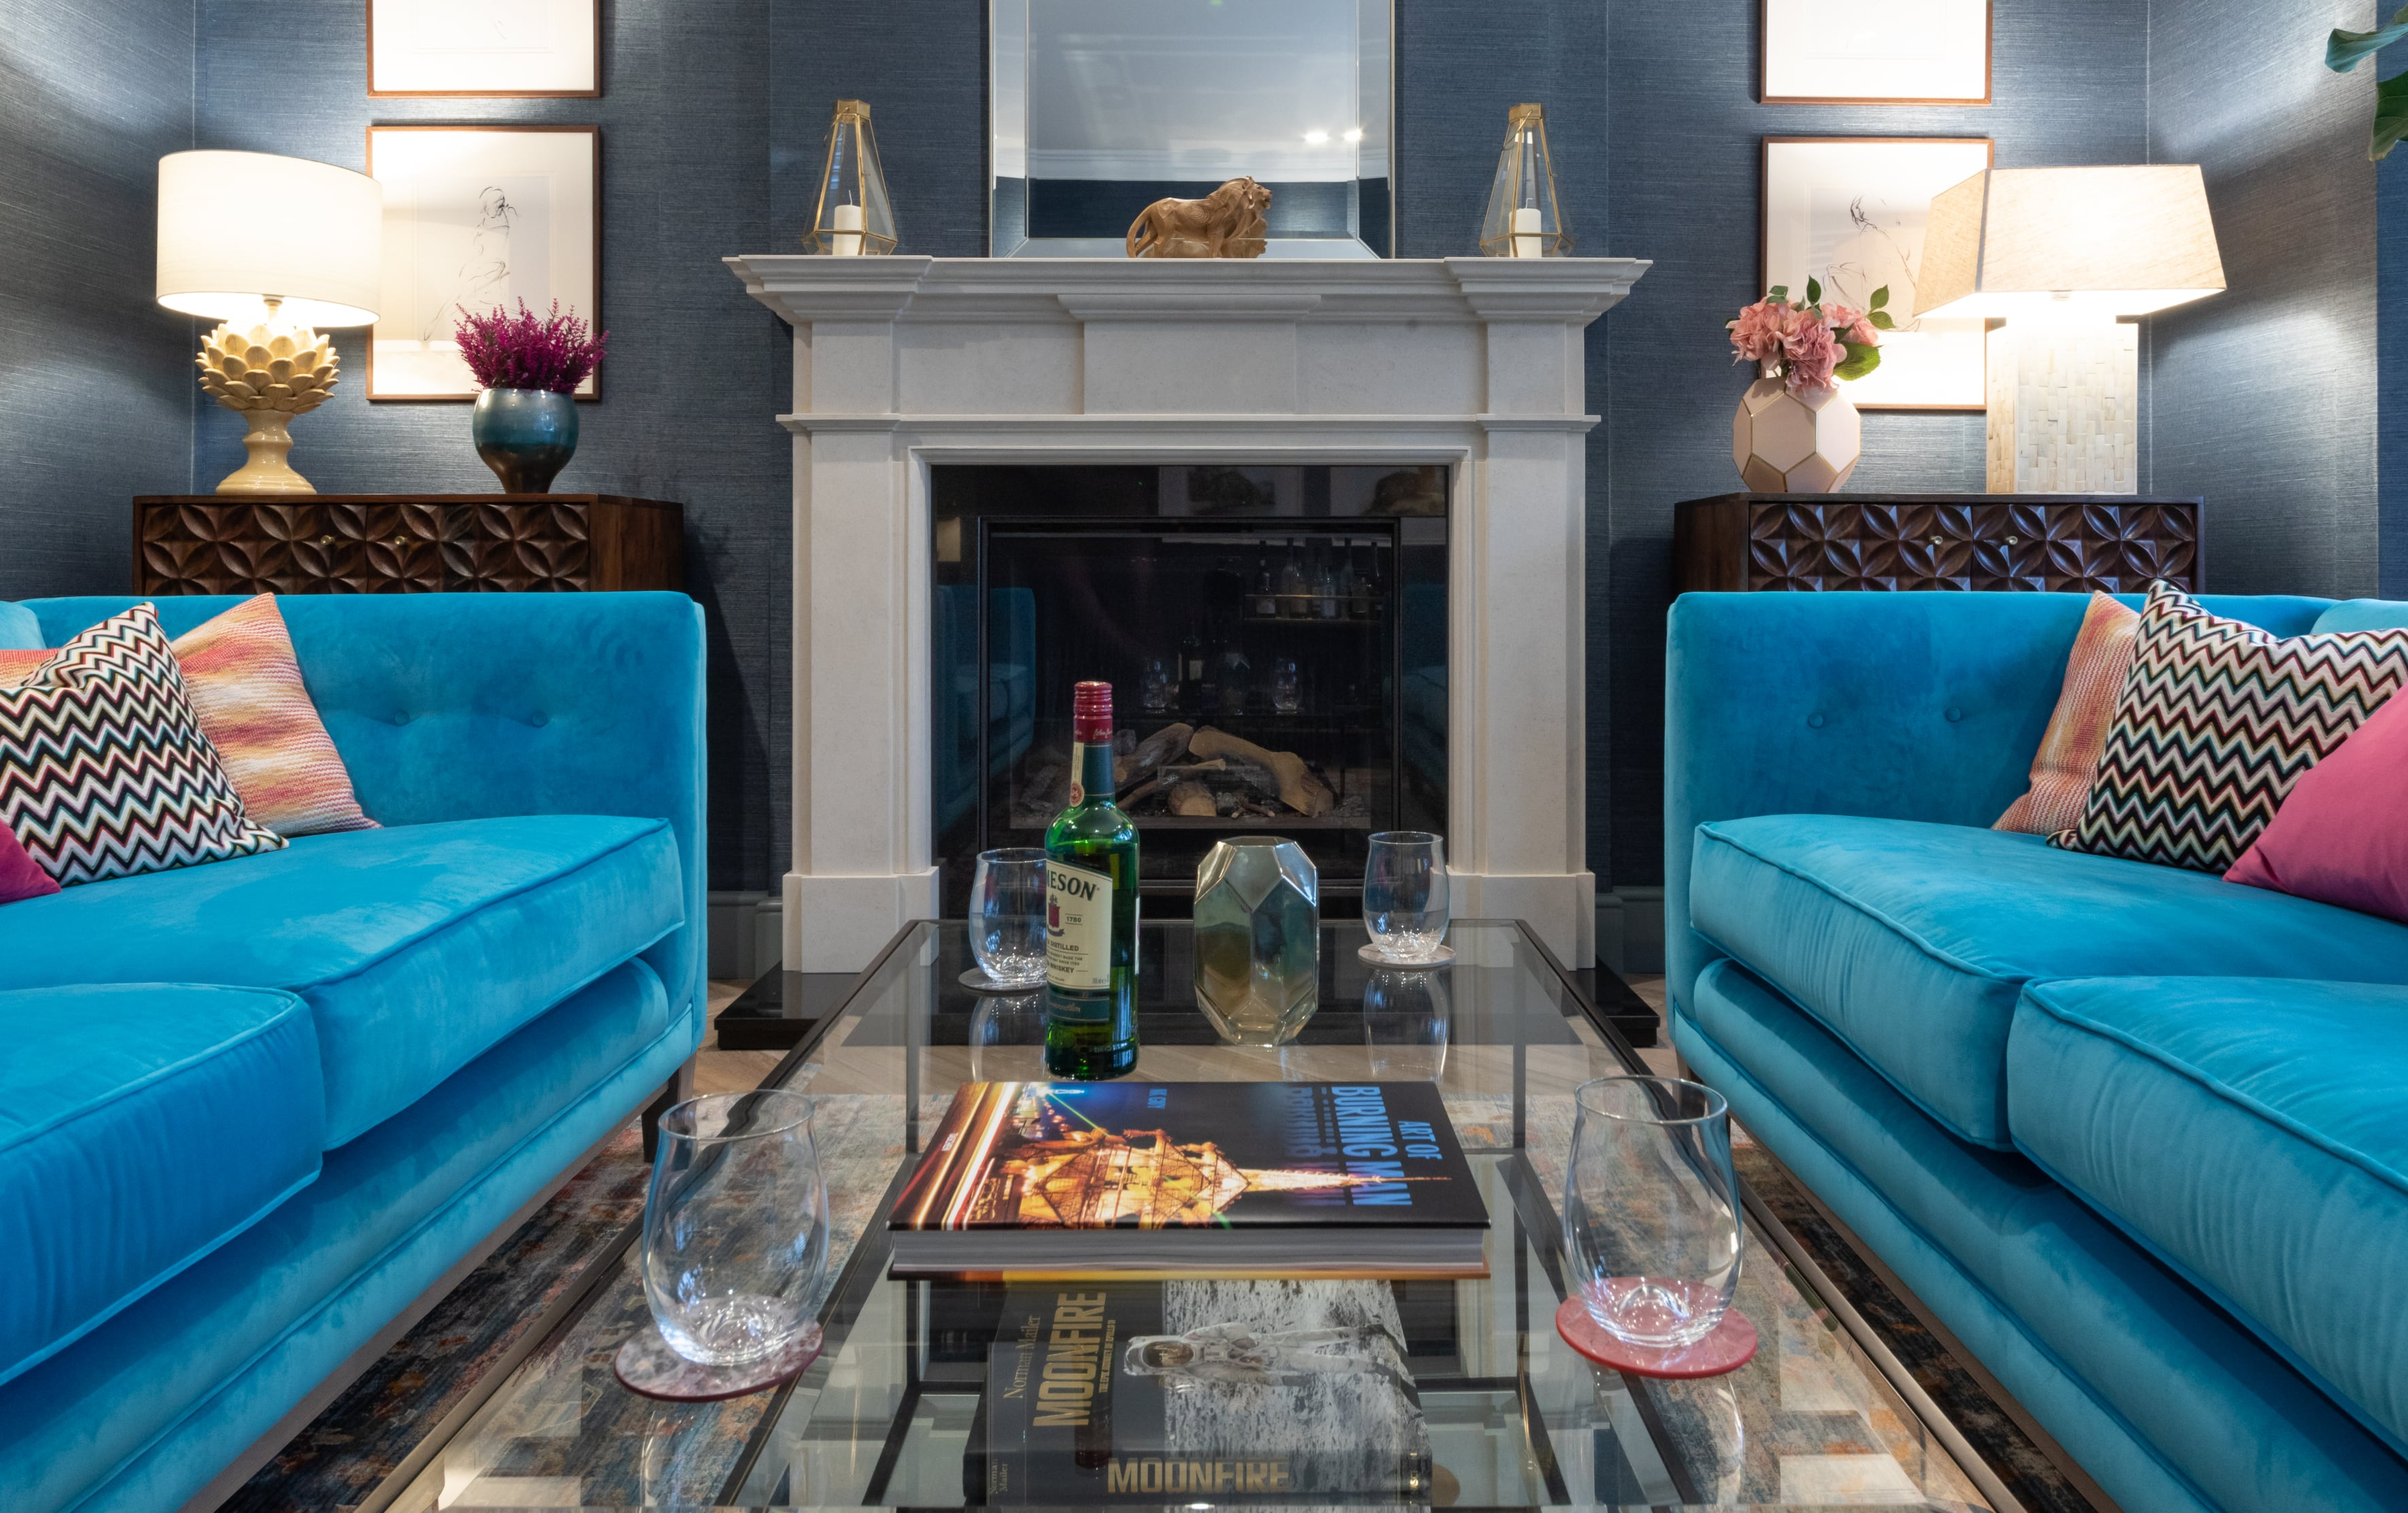 Luxury living room interior design with blue sofas and stone fireplace